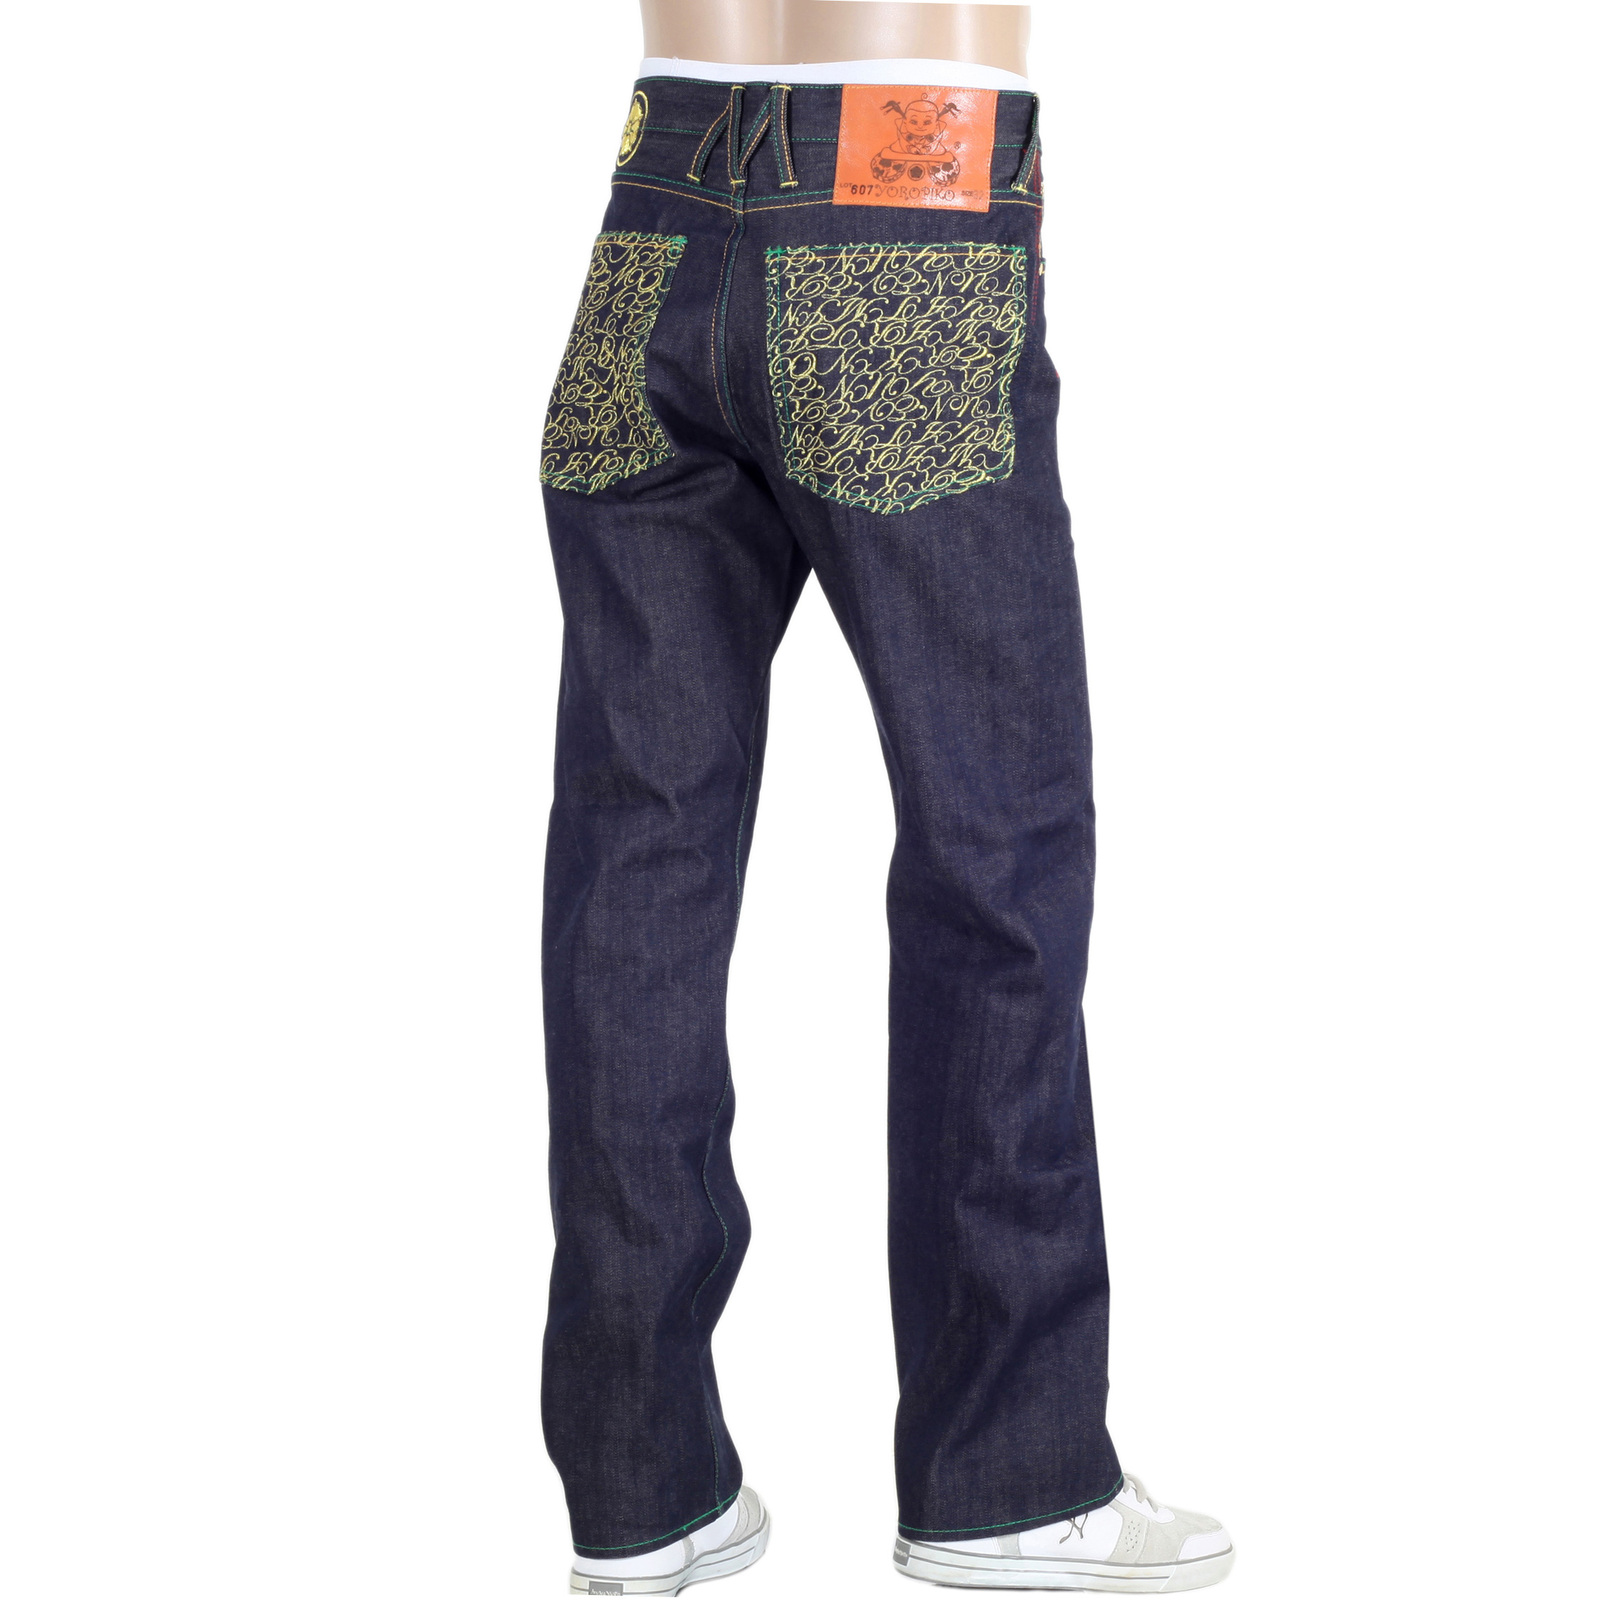 Buy Indigo FLY Selvedge Denim Jeans for Men by Yoropiko